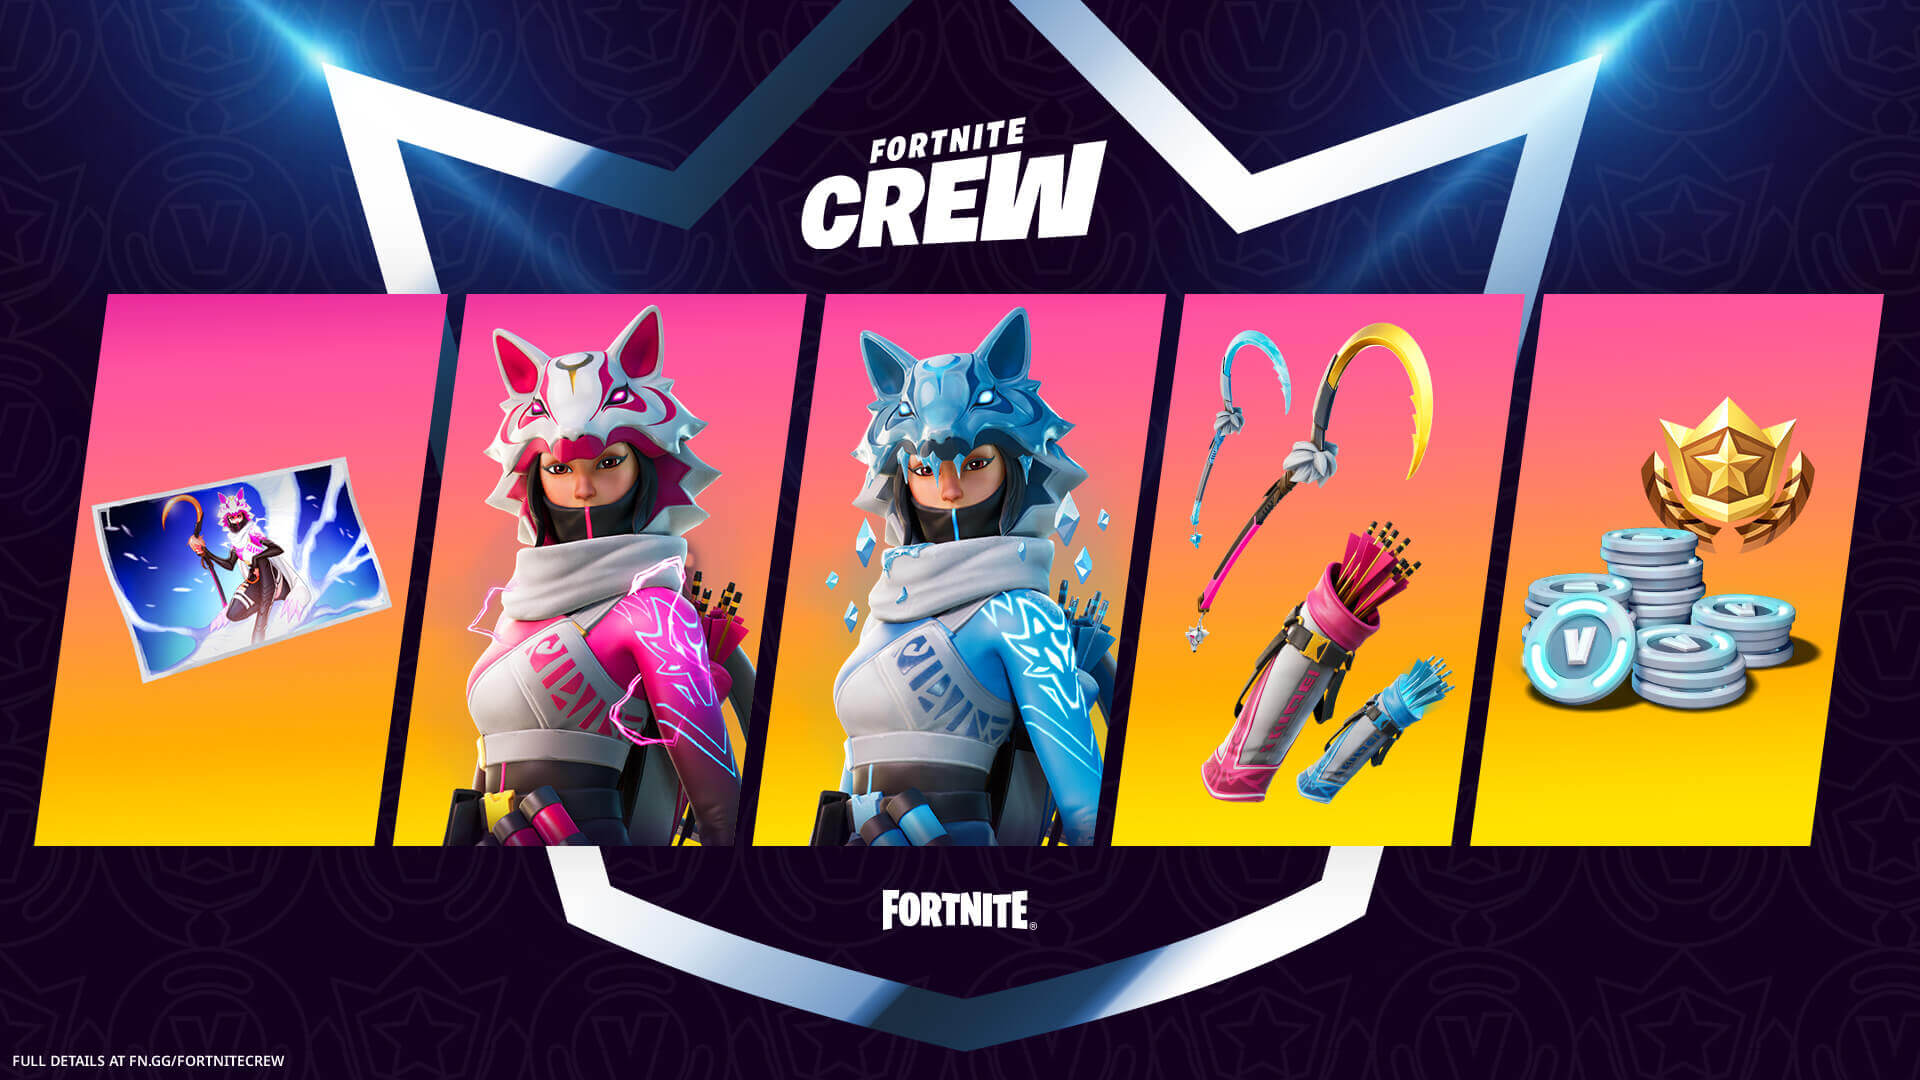 February's exclusive Fortnite Crew skin is Vi: Outfit, styles & more